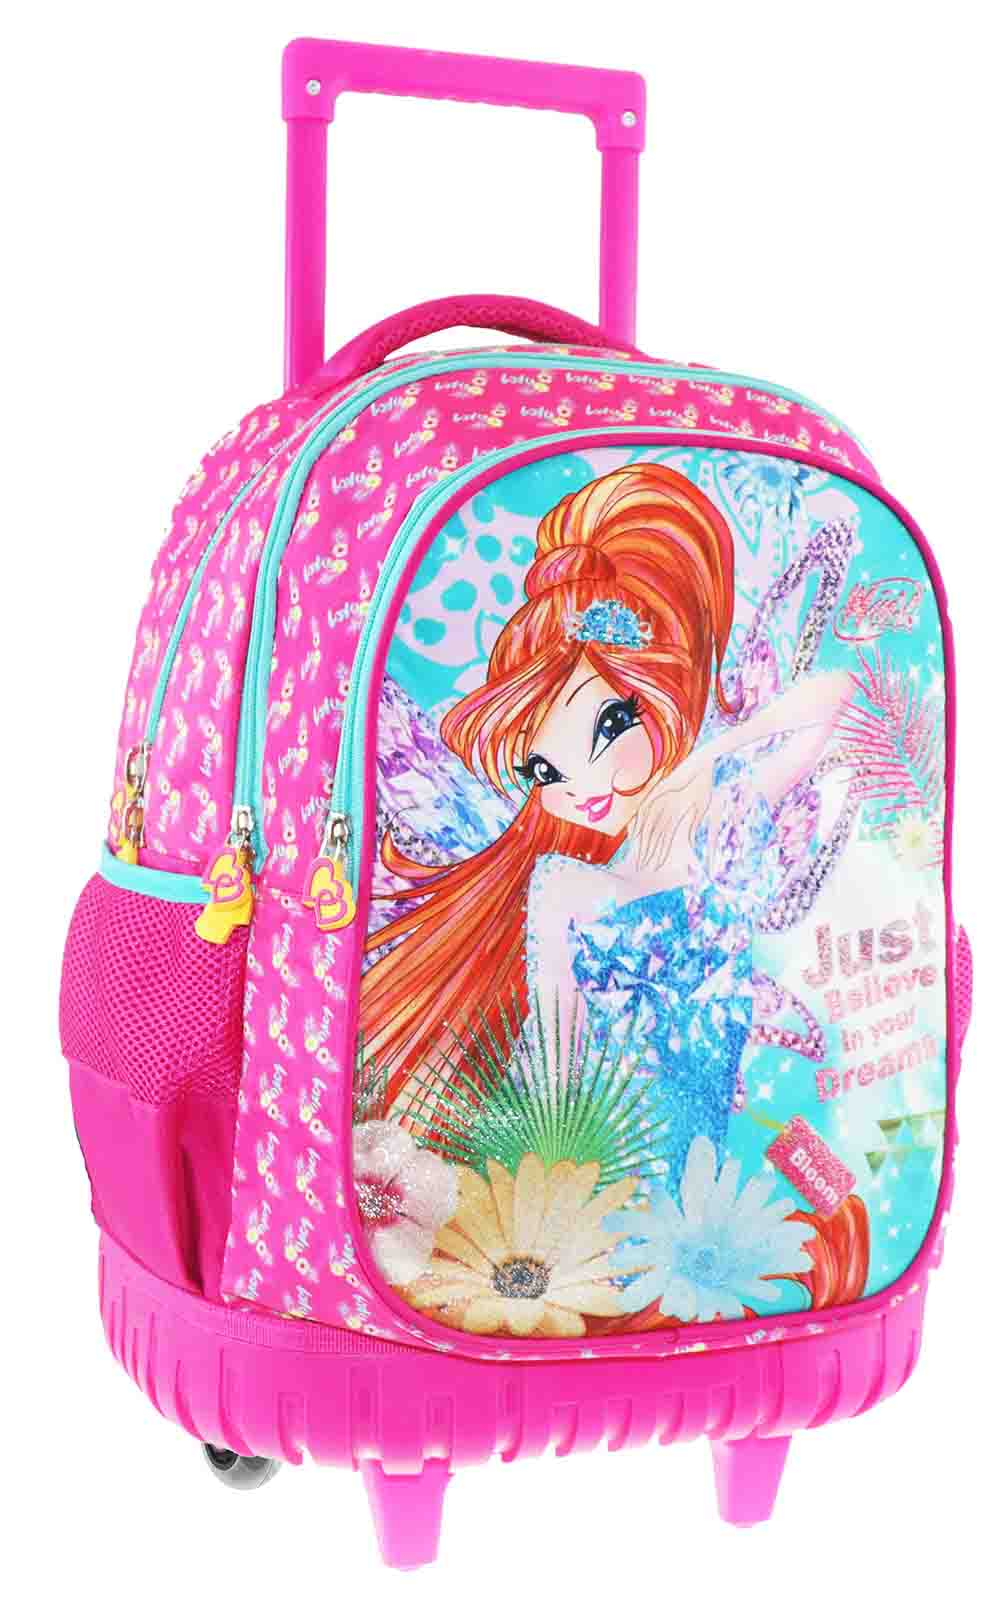 Winx back to school backpack